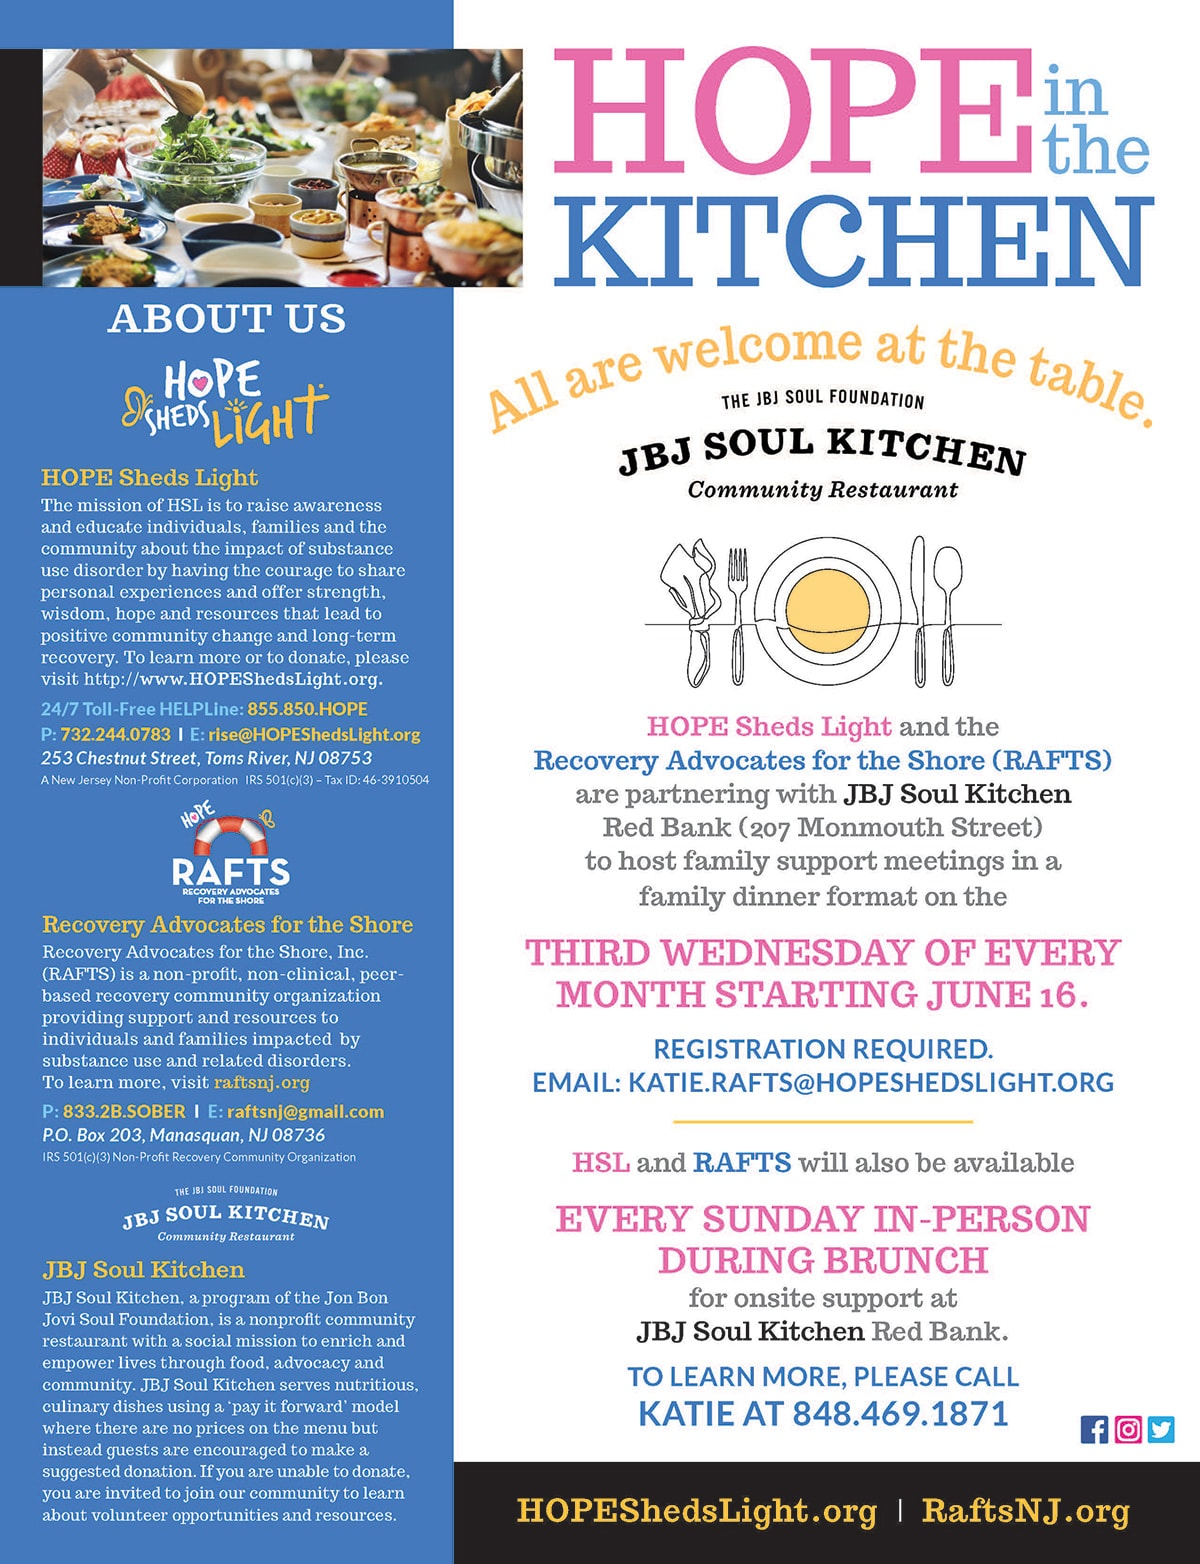 HOPE Sheds Light and Recovery Advocates for the Shore partner with JBJ Soul Kitchen to host family support meeting